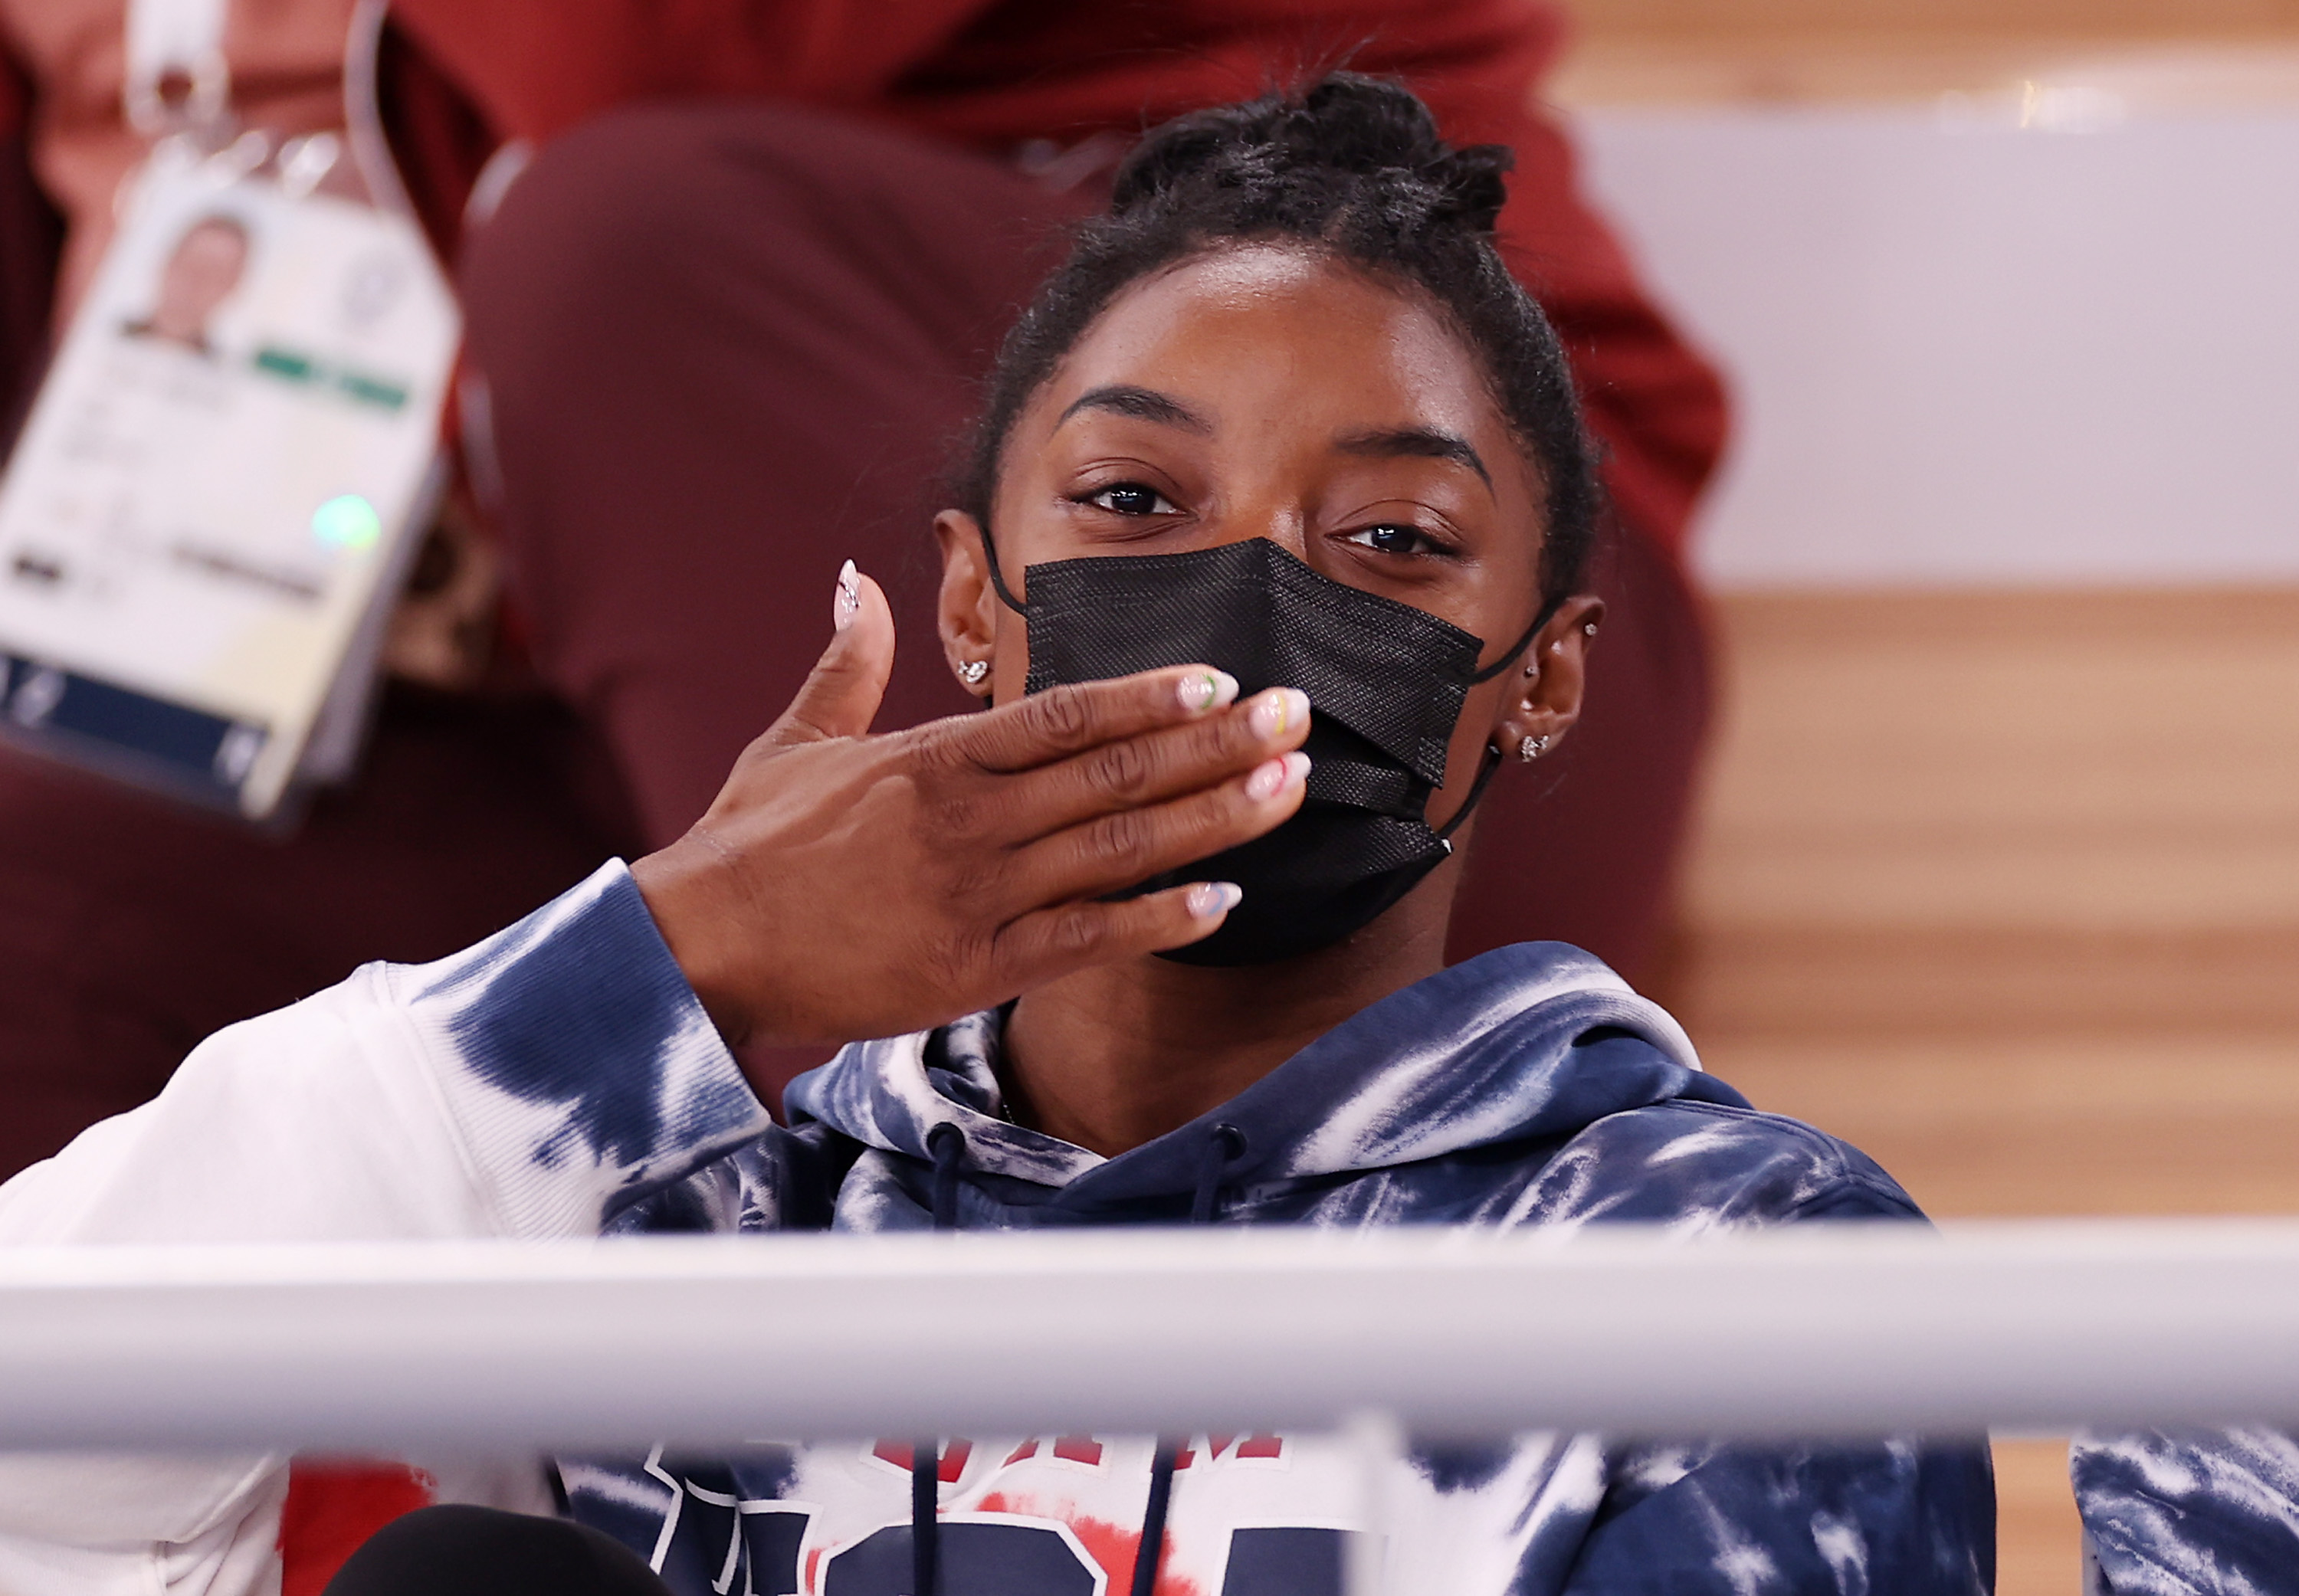 Simone Biles blows a kiss while watching the men's All-Around Final on day five of the Tokyo 2020 Olympic Games at Ariake Gymnastics Centre on July 28, 2021 in Tokyo, Japan.